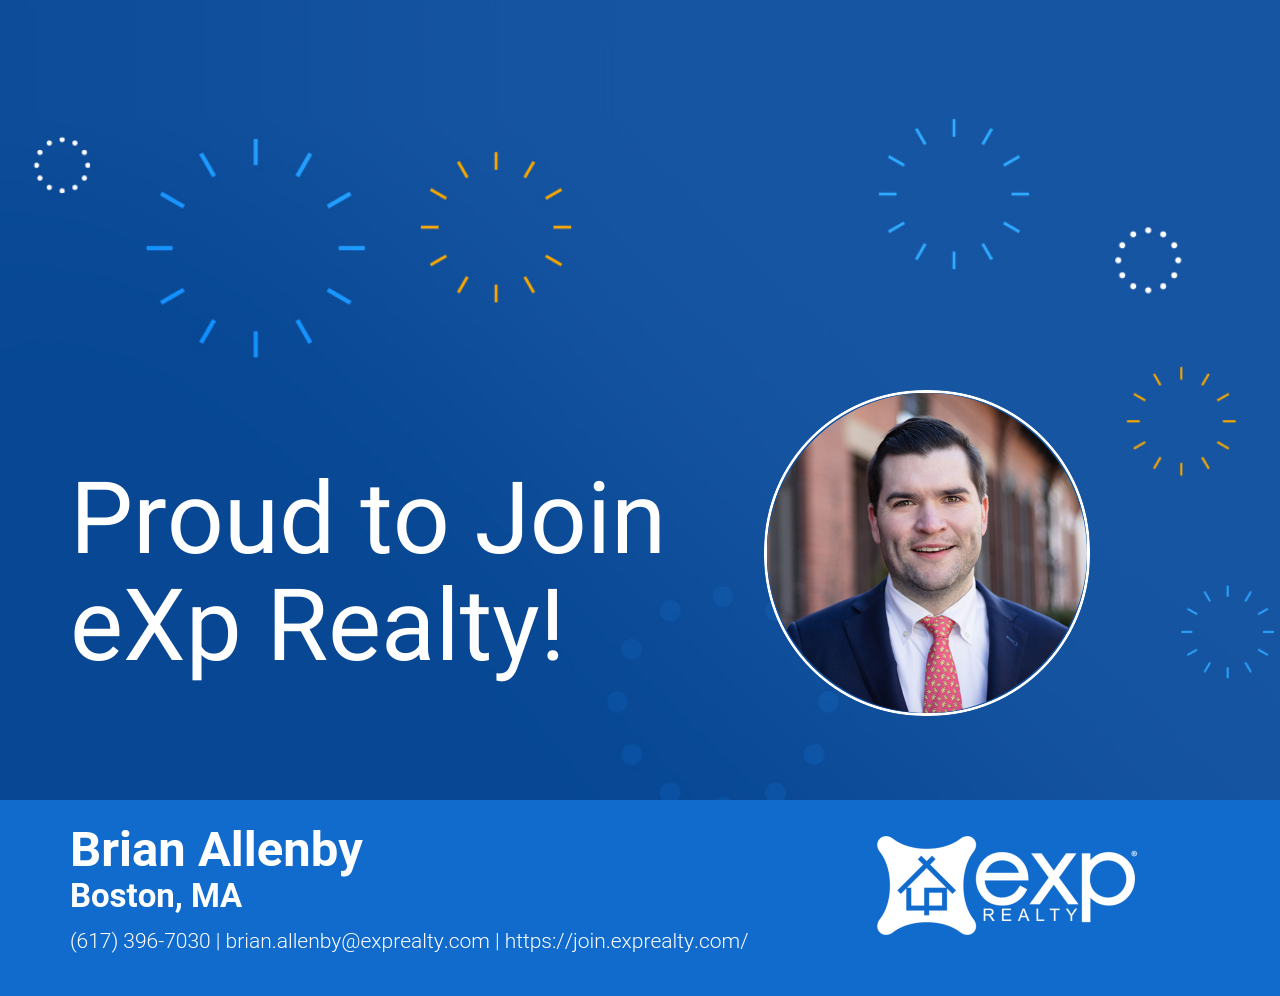 Brian Allenby Joined eXp Realty!